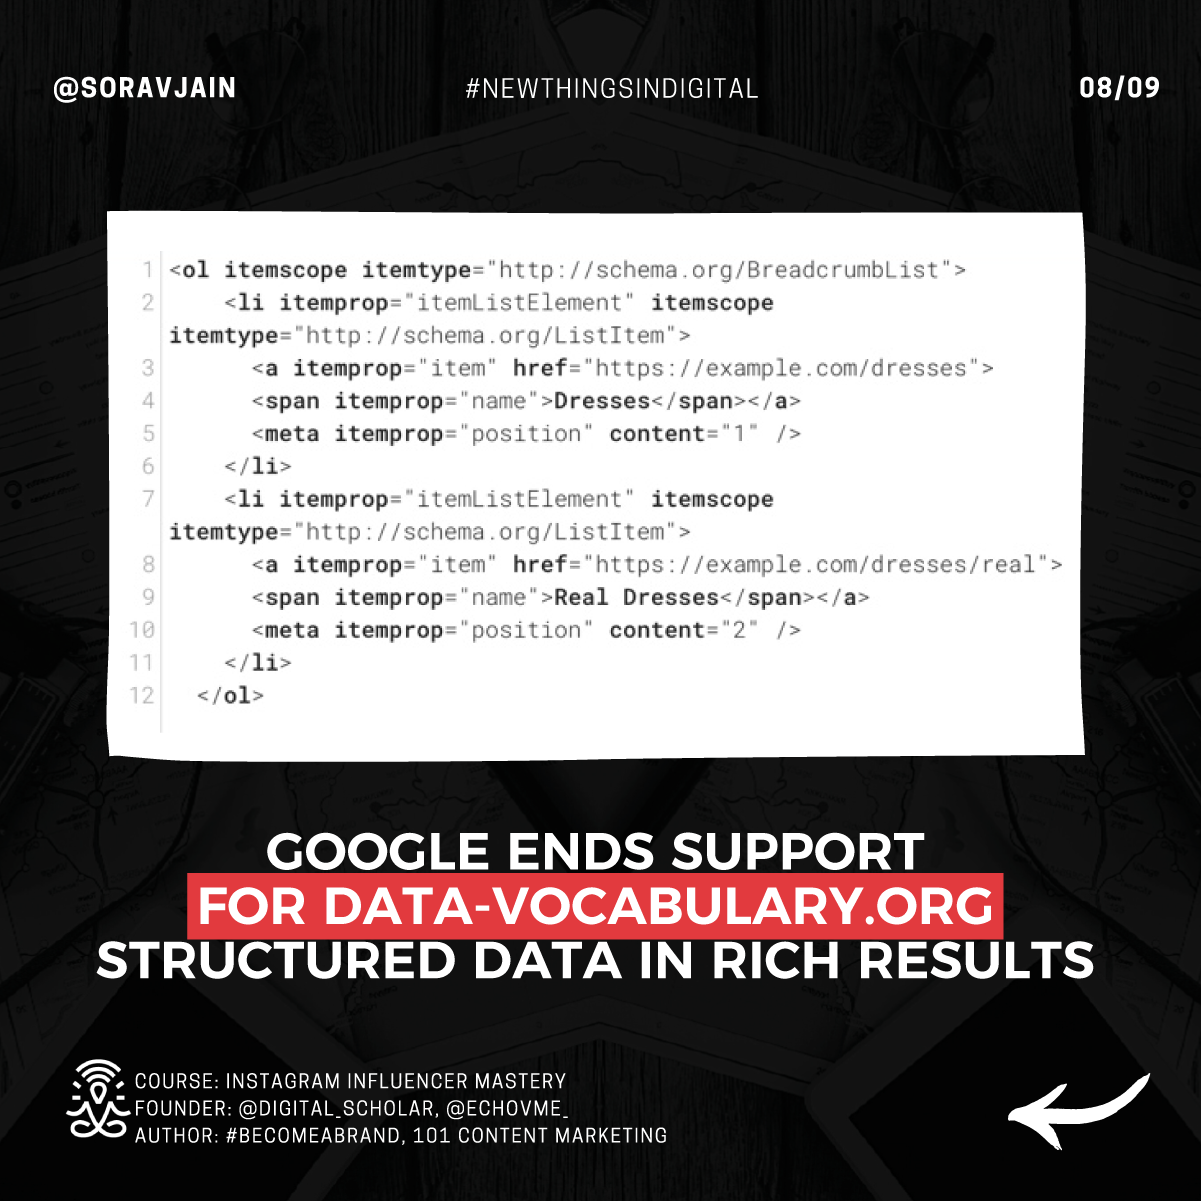 Google ends support for data-vocabulary.orgstructured data in rich results